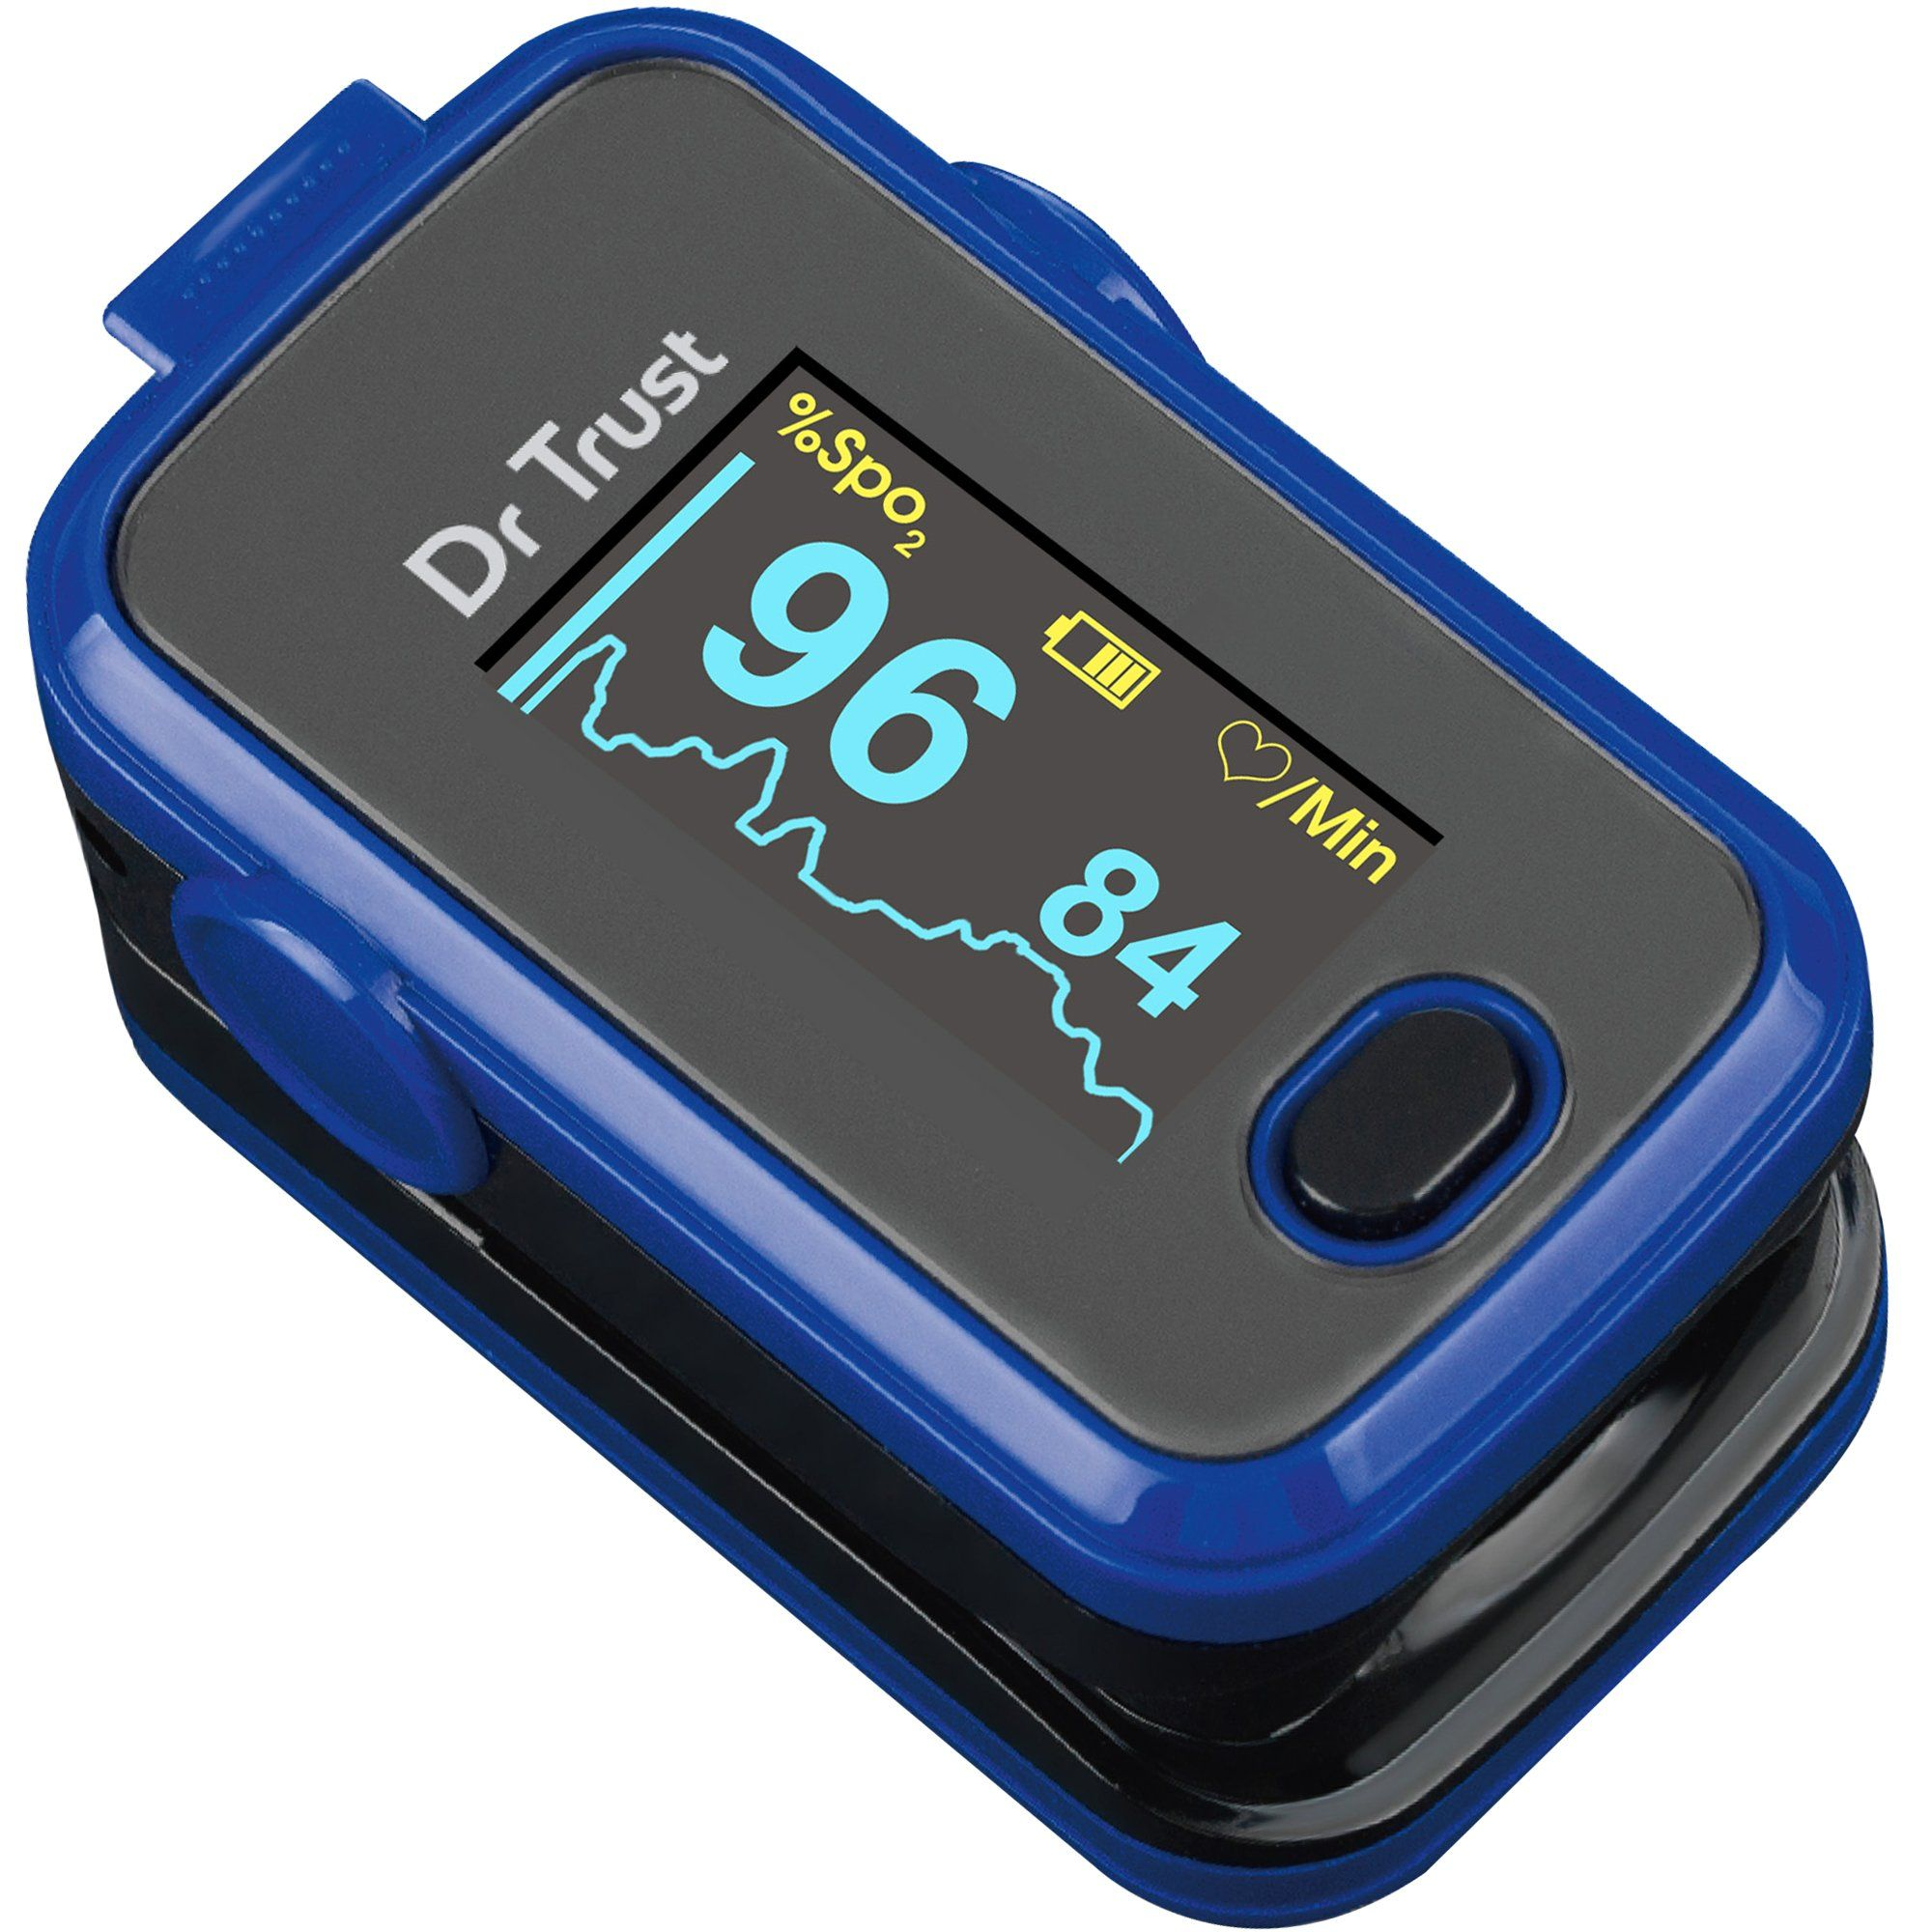 Dr Trust USA Signature Finger Tip Pulse Oximeter (Blue) 207 - Dr Trust USA